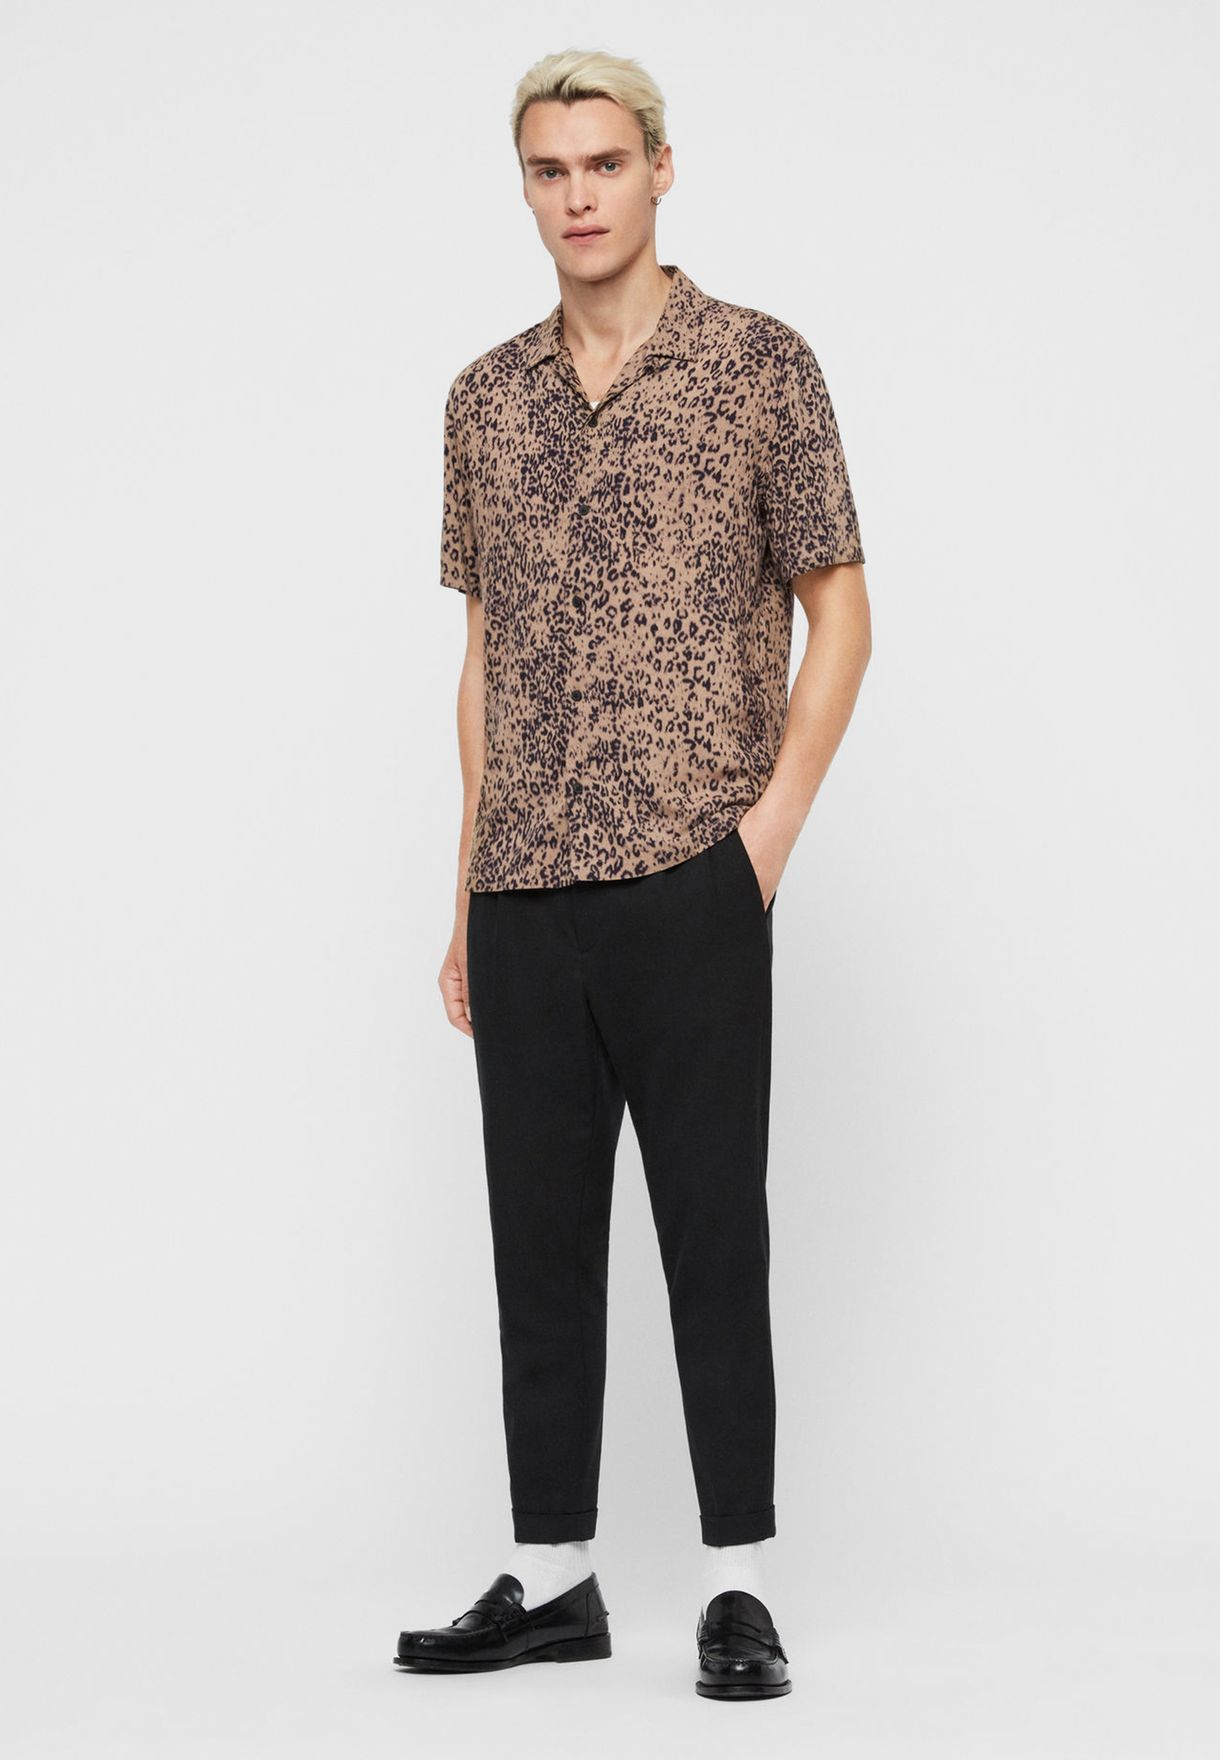 Leopard Print Slim Fit Shirt